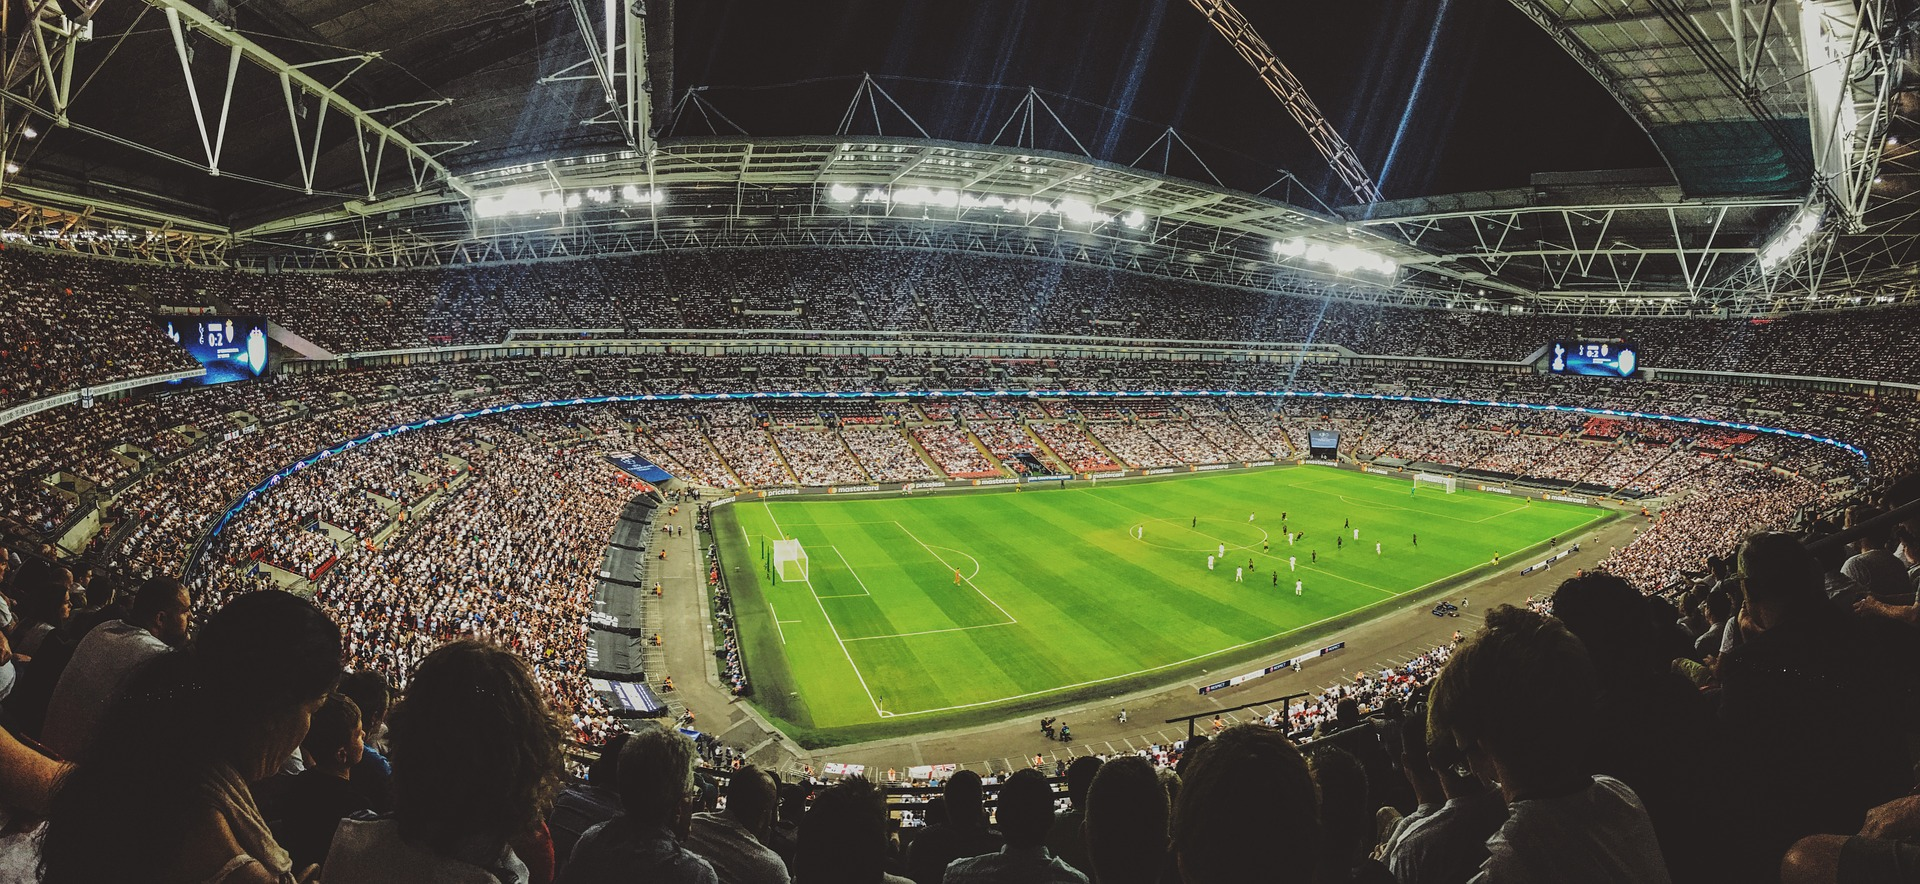 Governance and ownership issues in football and its ties to economic crime